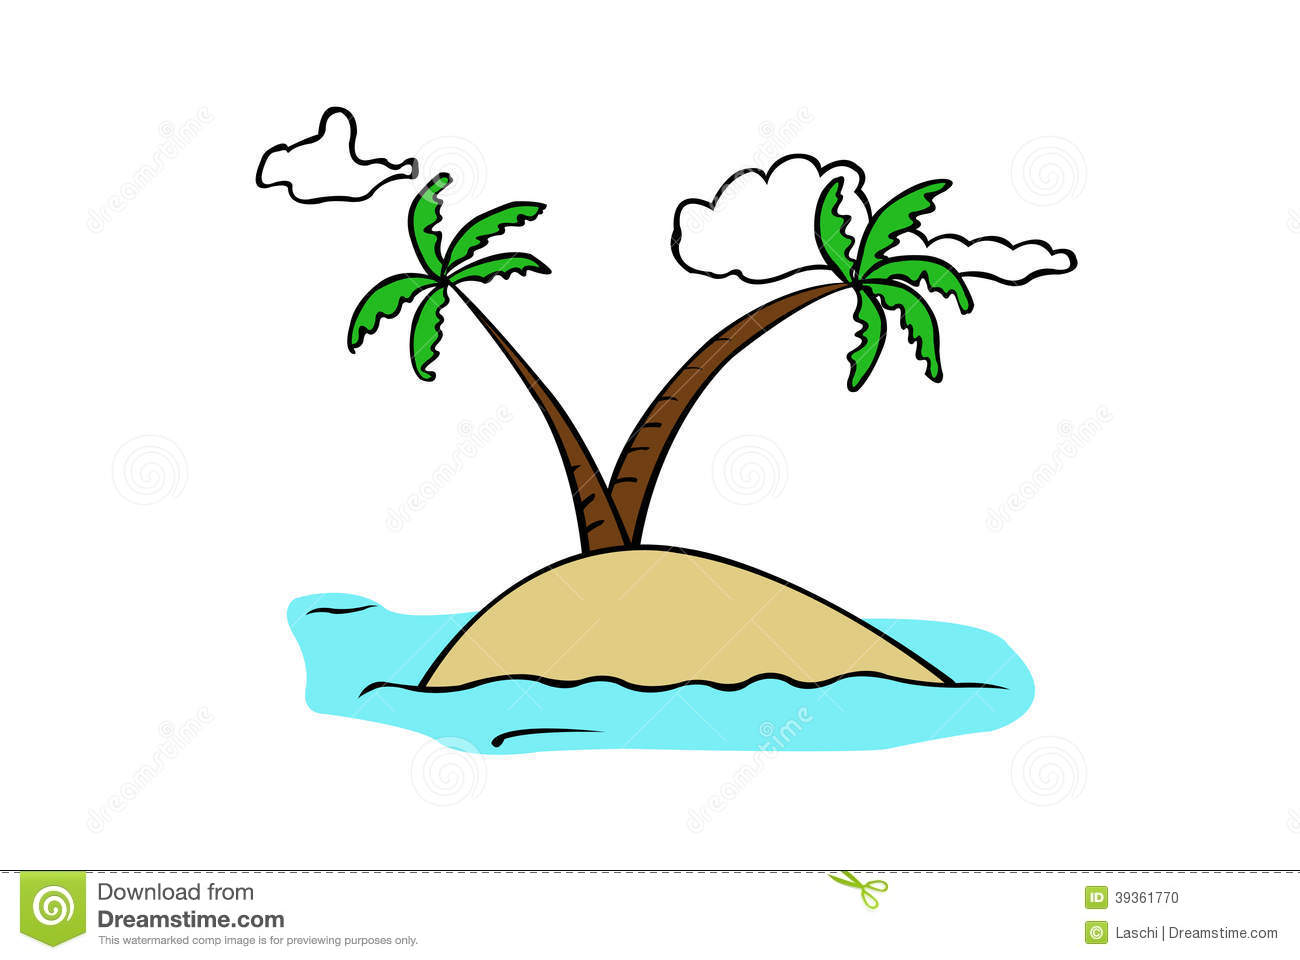 Cartoon Island Pictures to Pin on Pinterest - PinsDaddy